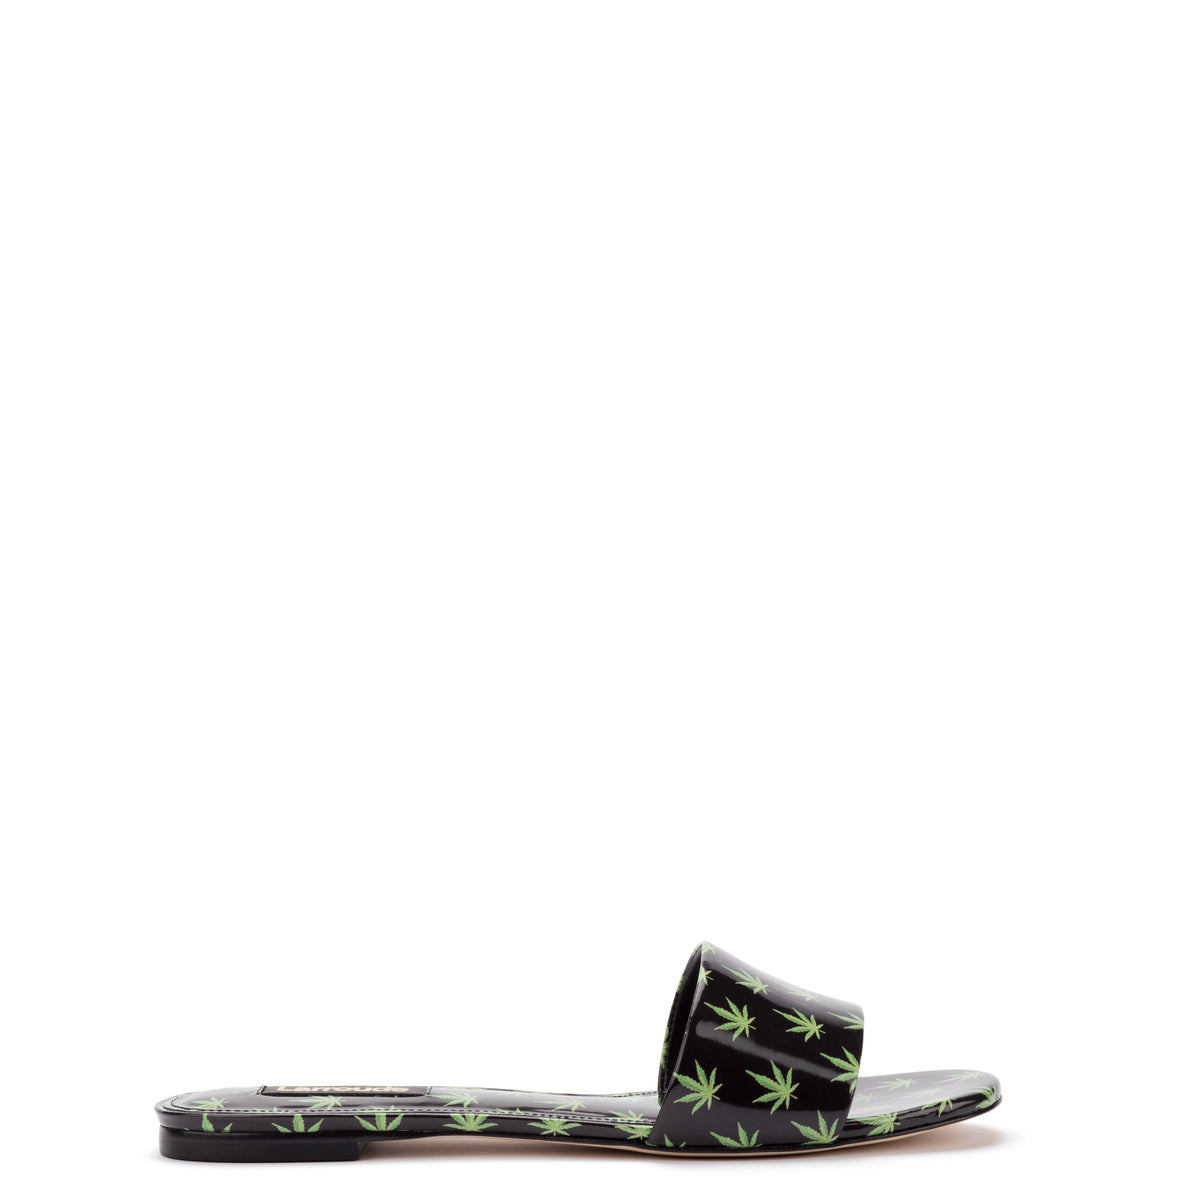 Ivy Flat Mule In Black Leaf Patent Leather